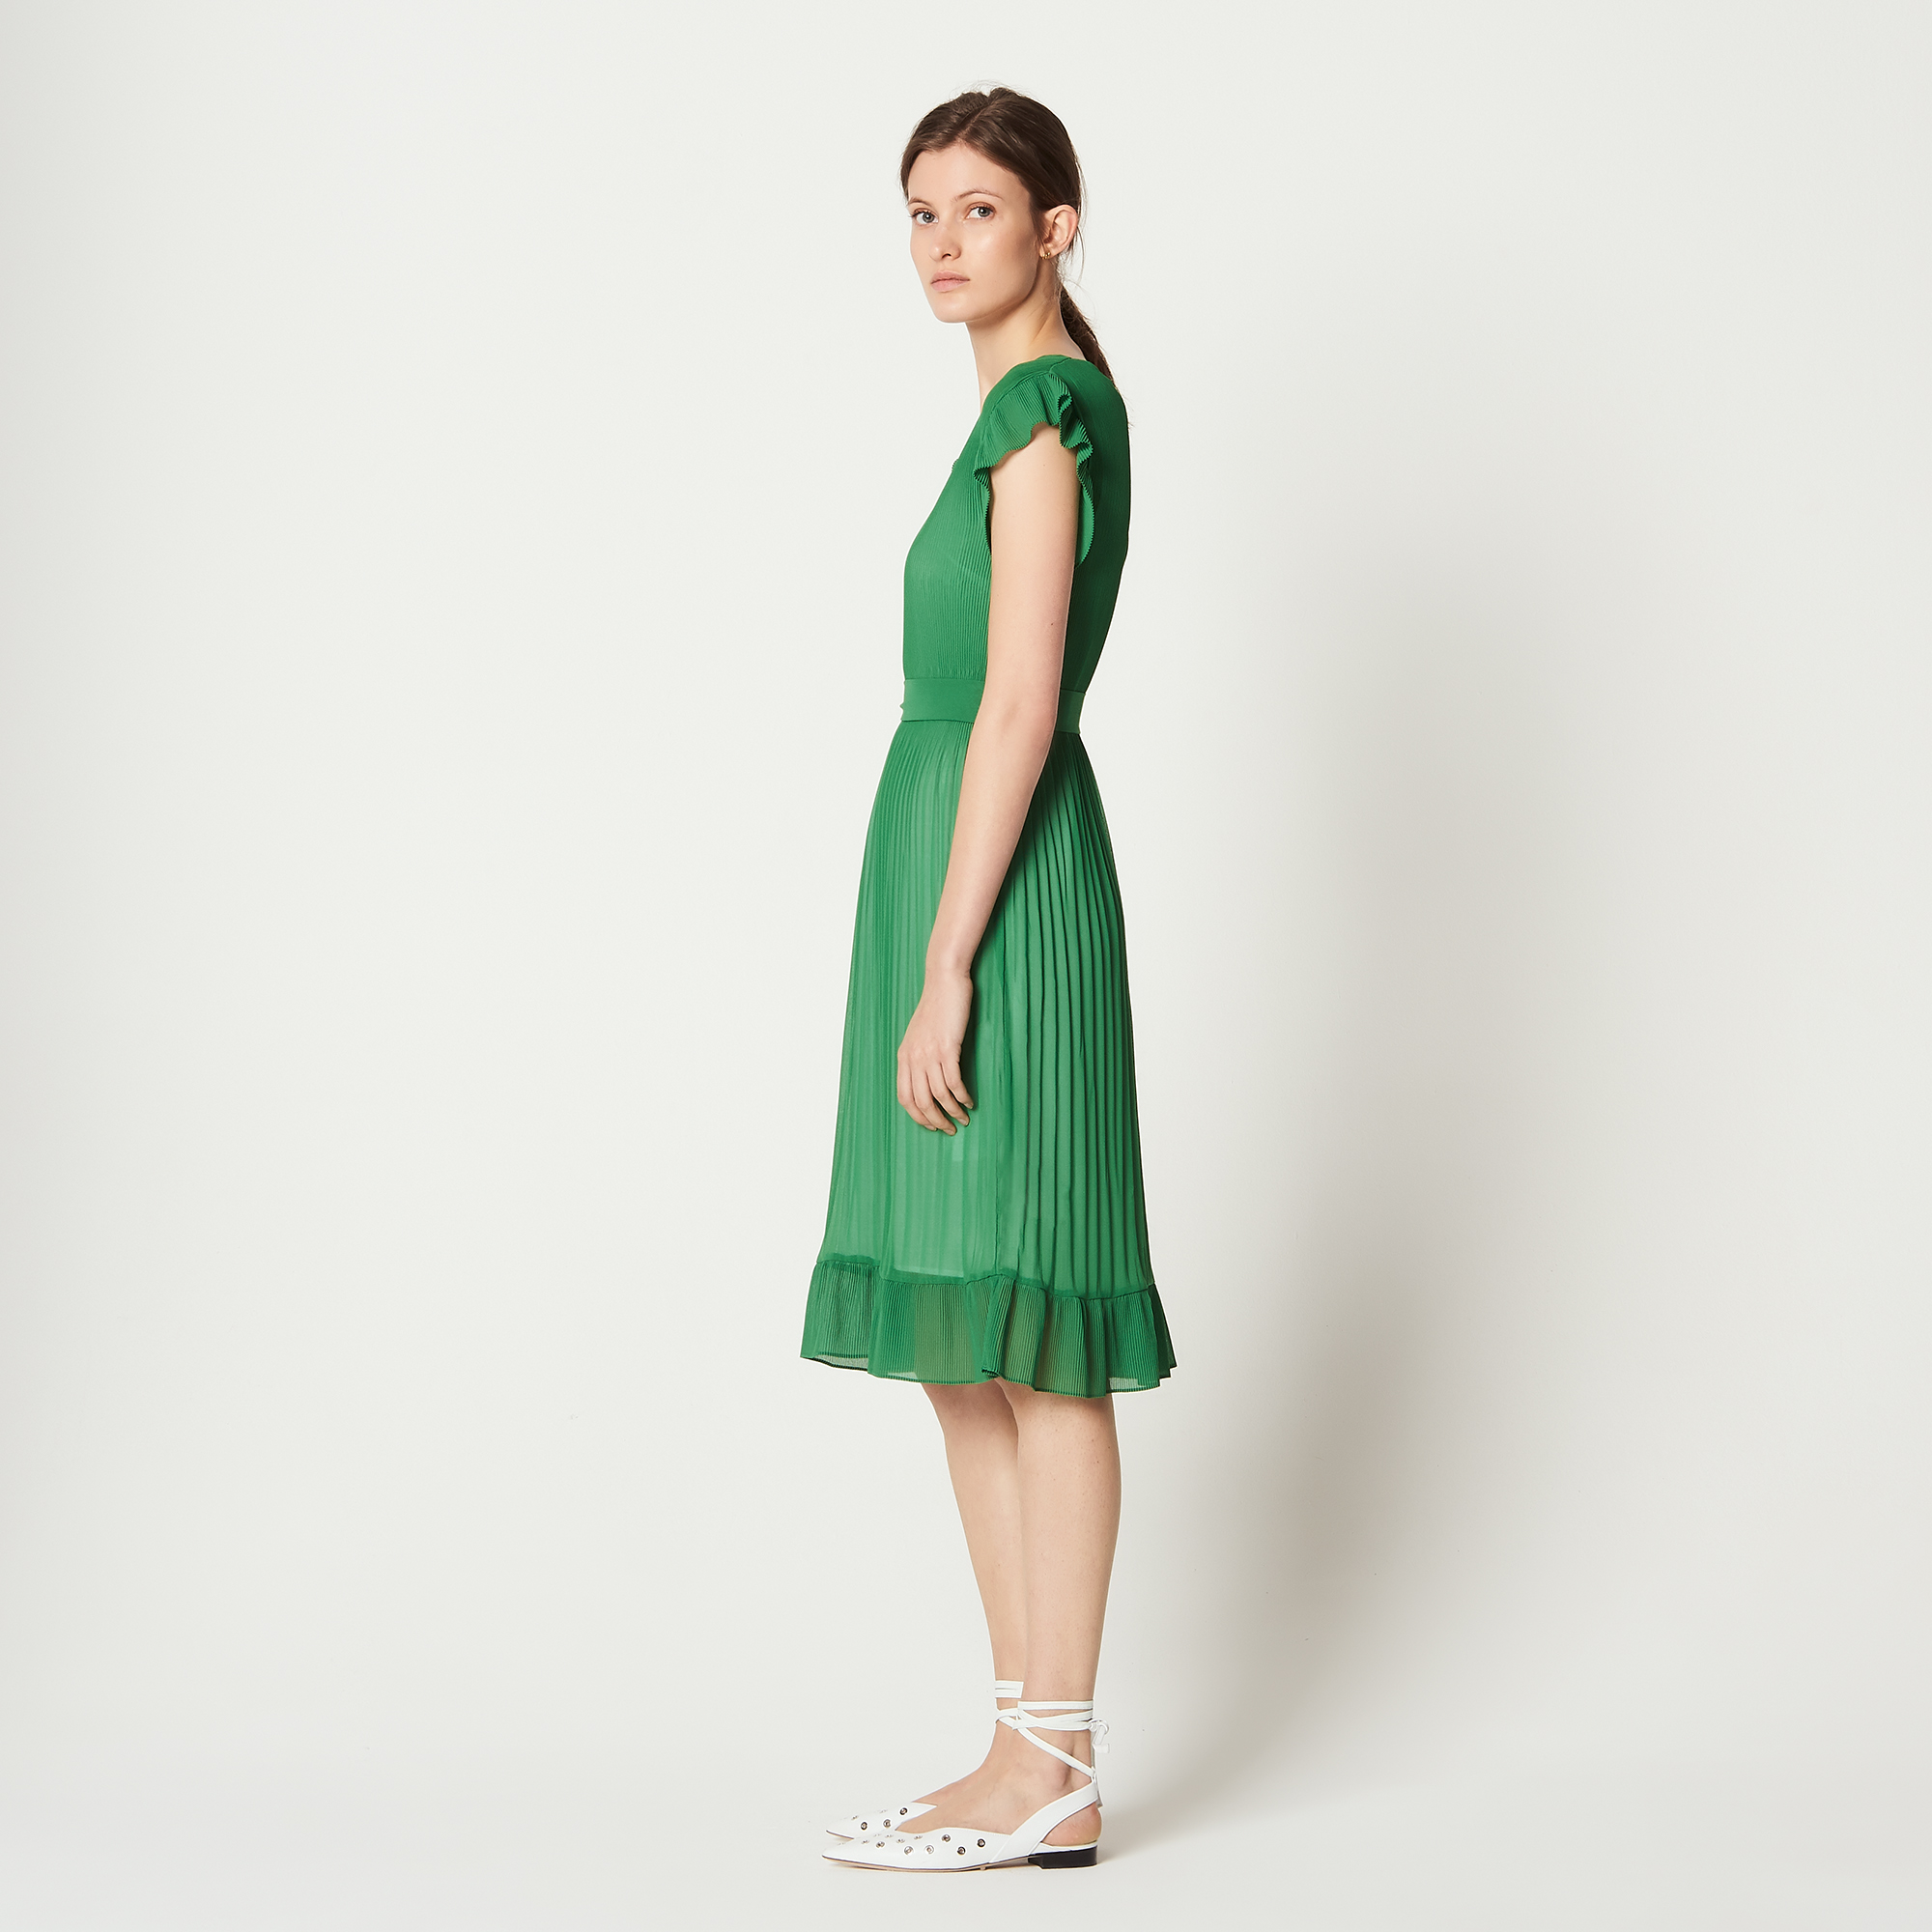 2b0542d1ec59 ... Ruffled dress with belt   Dresses color Green Grass ...